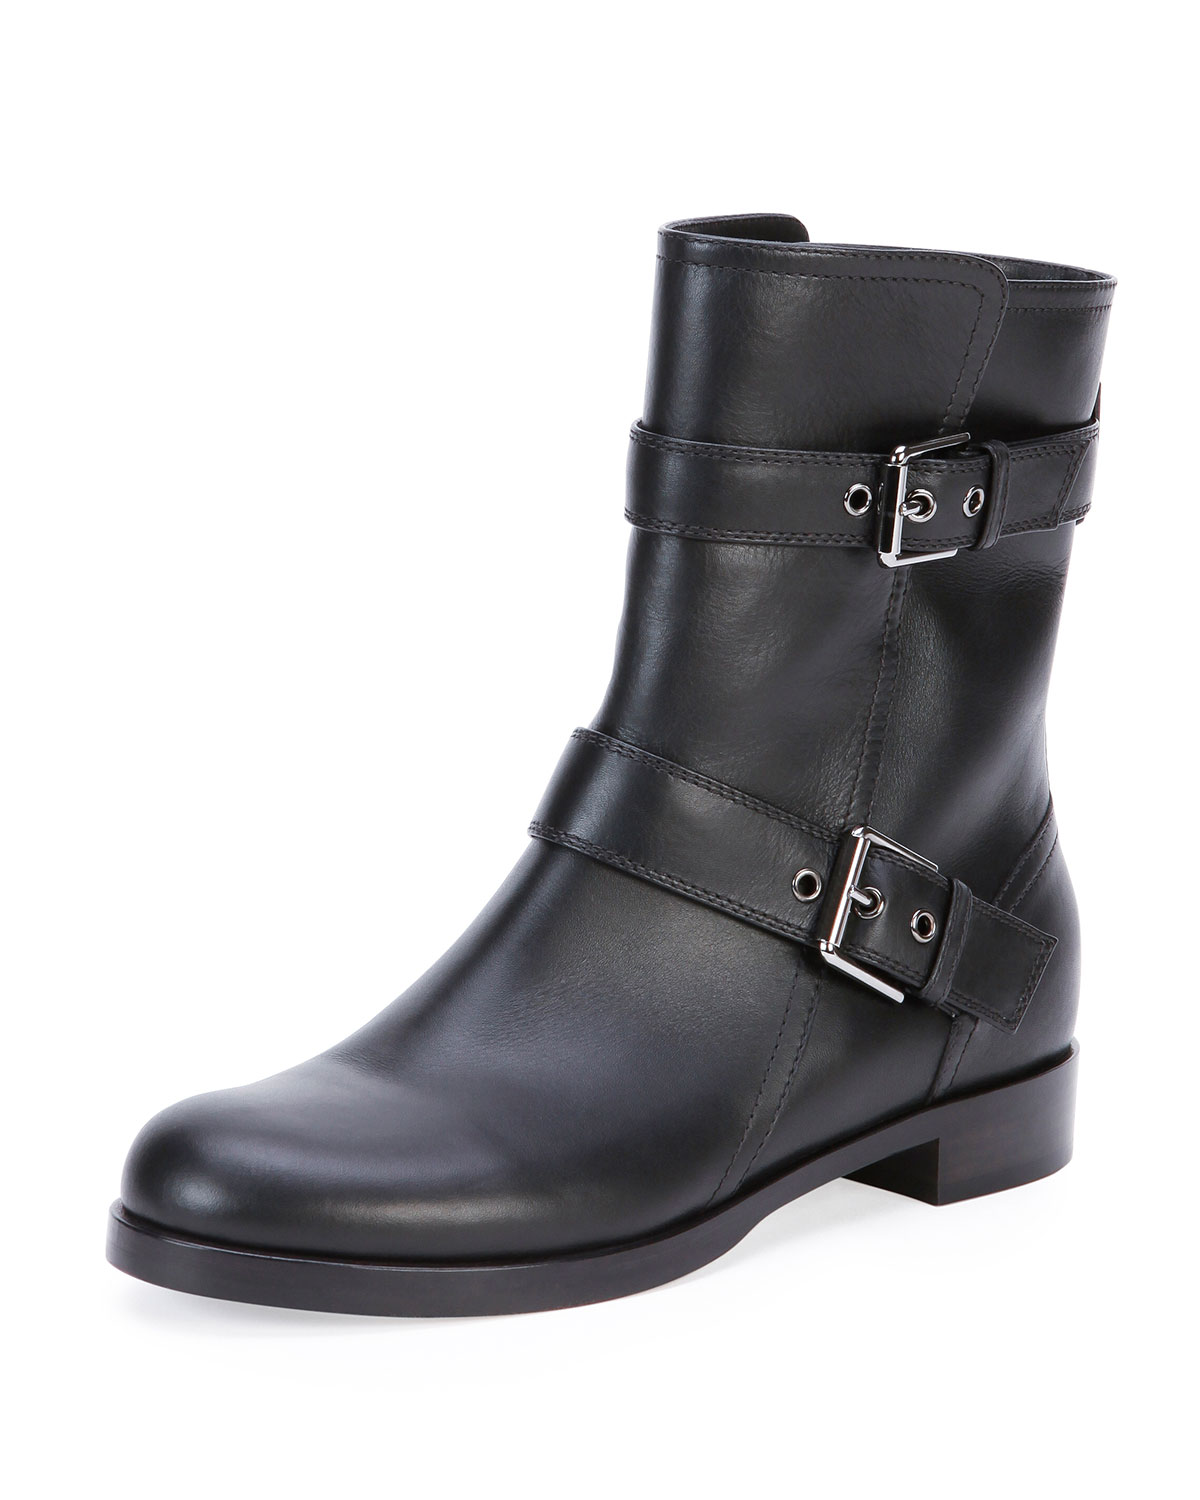 Leather Double Buckle Ankle Boot, Black   Gianvito Rossi   Black (38.0B/8.0B)